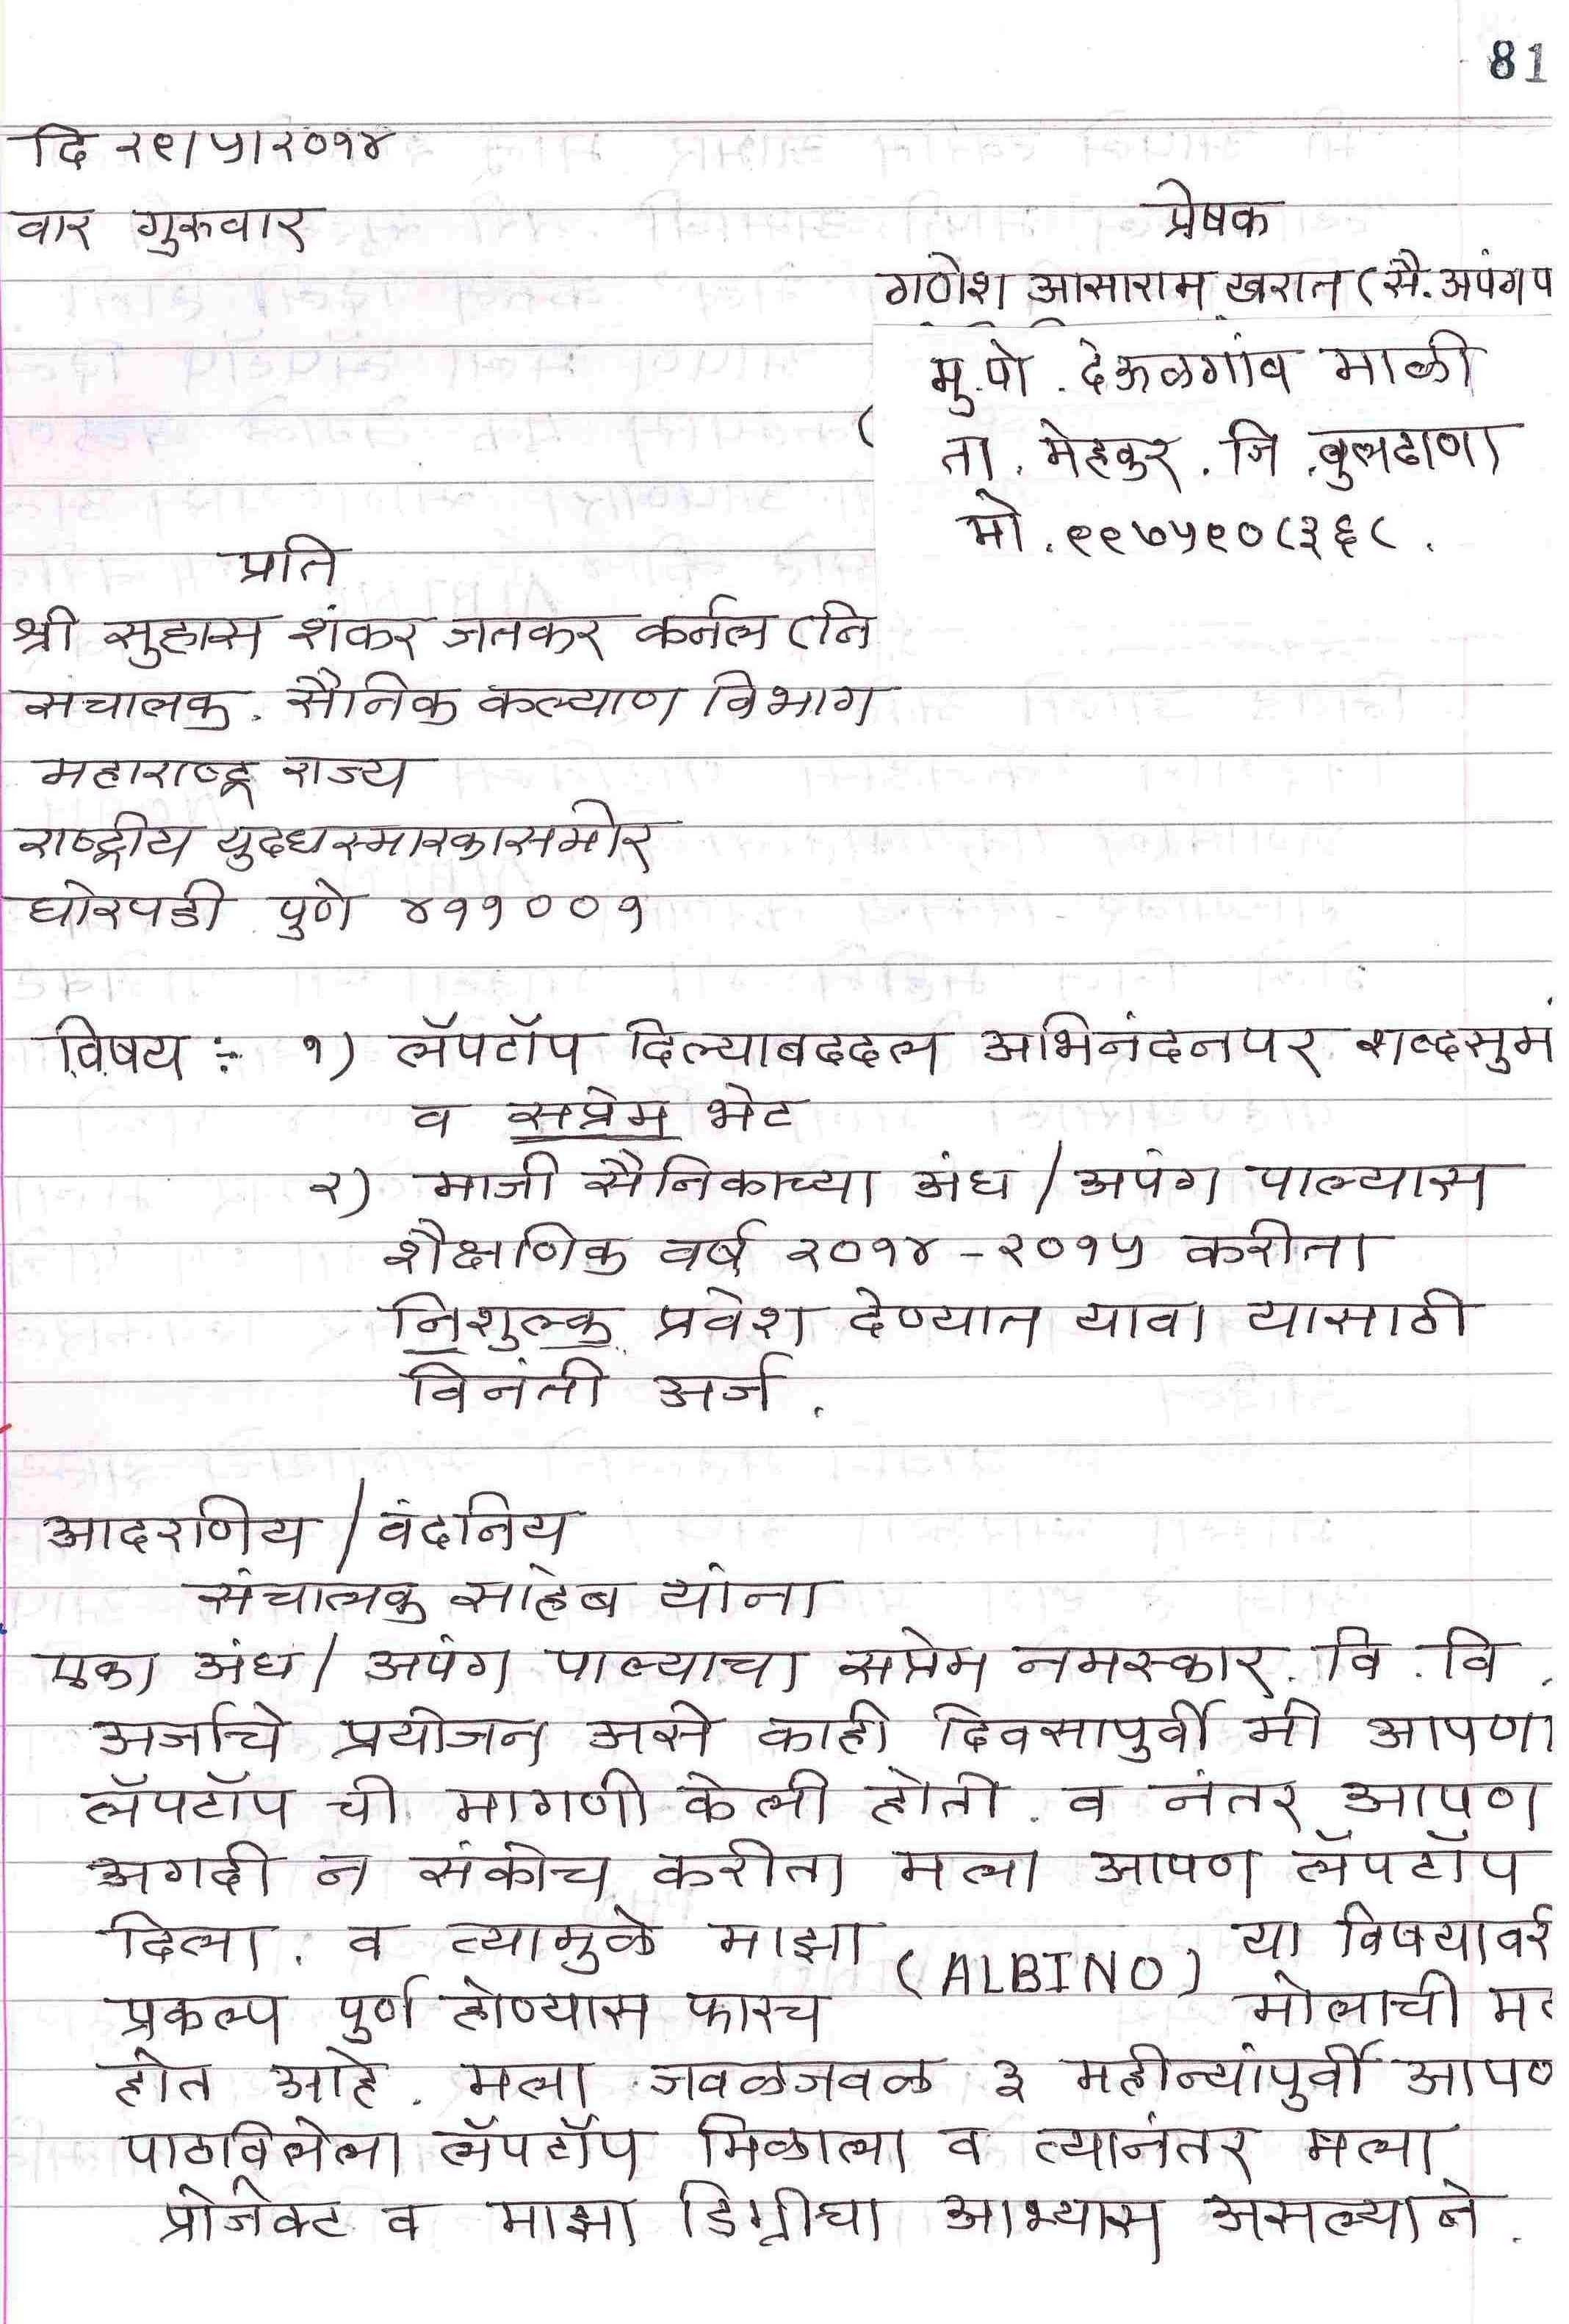 Valid Formative Letter In Hindi Language Formal Letter Writing Writing Math Words